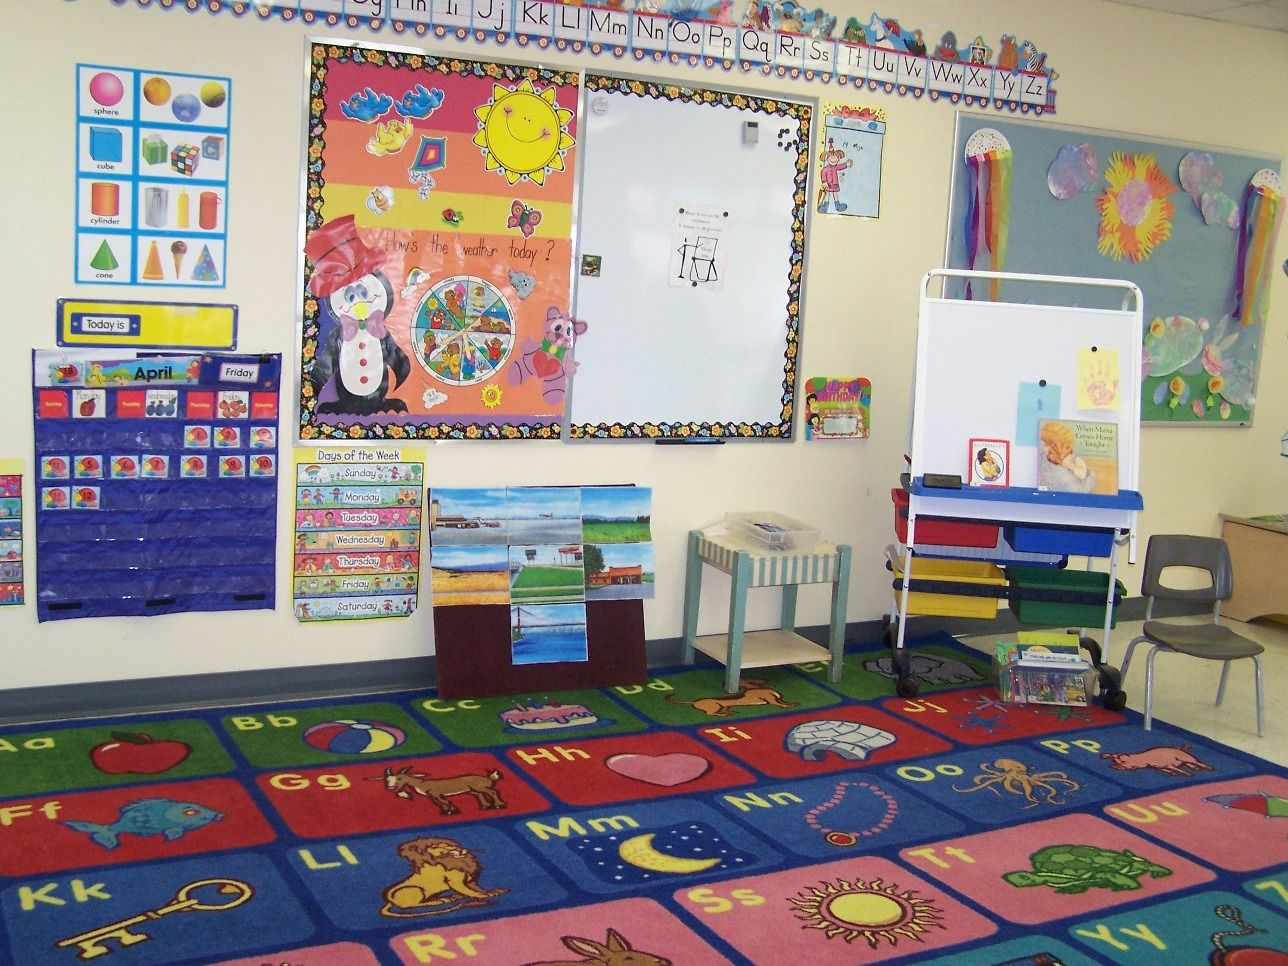 Innovative Ideas For Classroom Teaching ~ My classroom will be full of learning numbers shapes